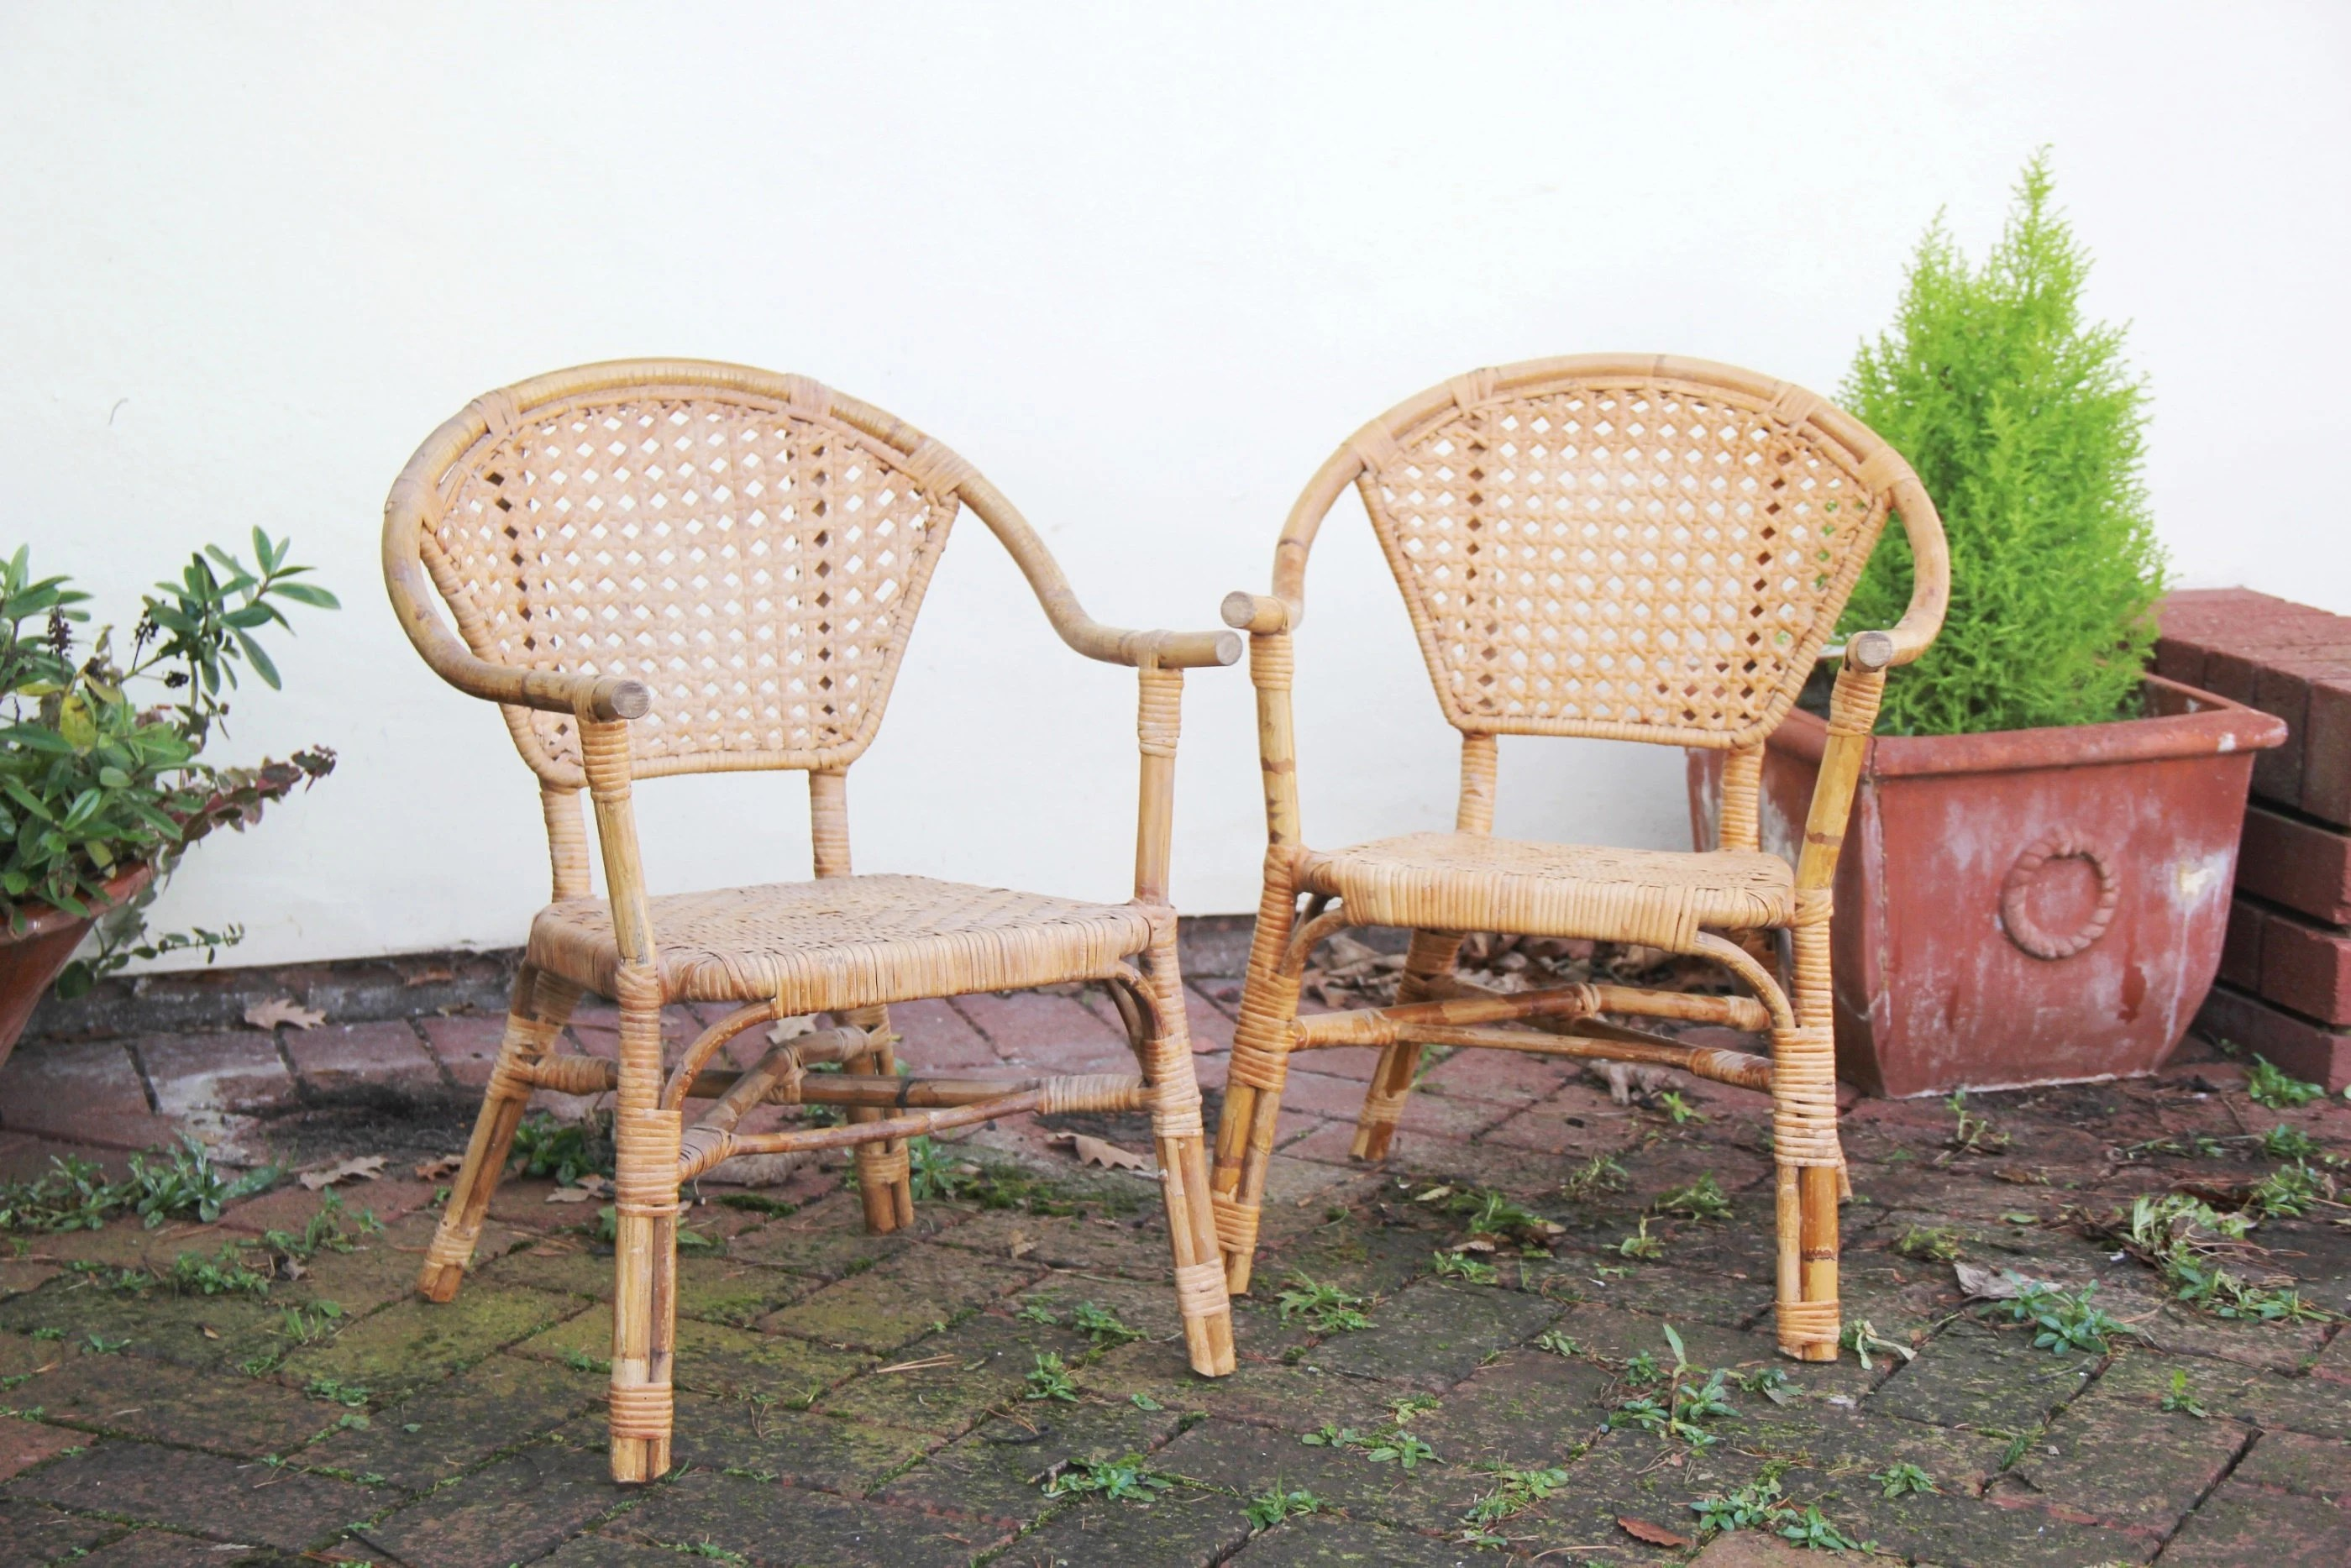 wicker chairs for sale chair casters carpet etsy pair of small rattan vintage childrens display dolls boho interiors